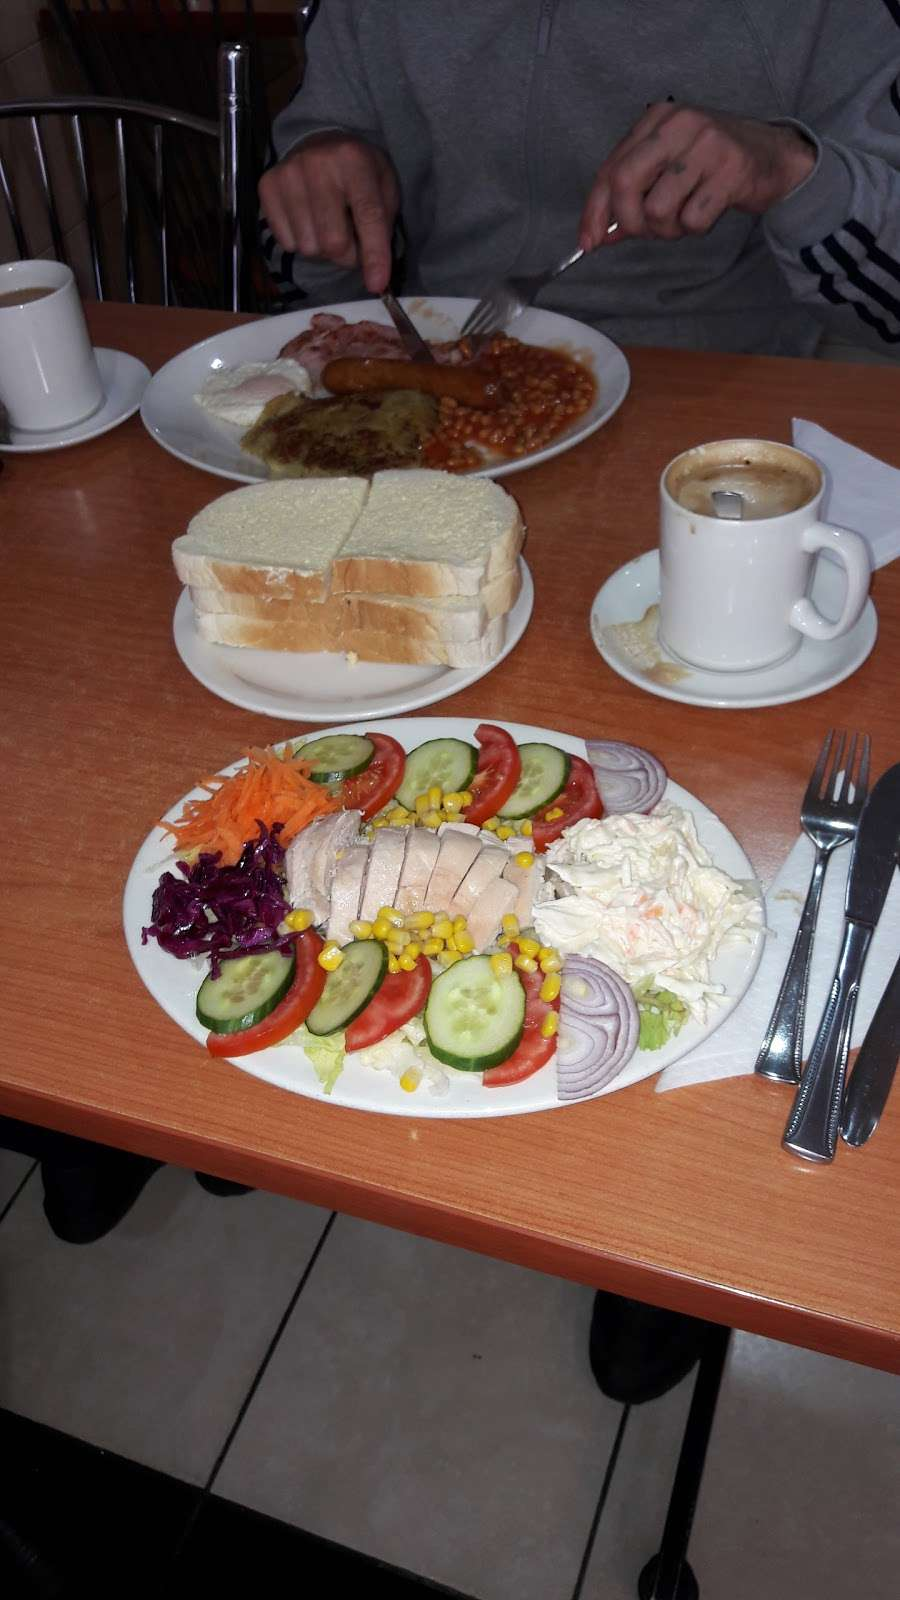 Royal Cafe - cafe  | Photo 3 of 6 | Address: 261 Wickham Ln, Abbey Wood, London SE2 0NX, UK | Phone: 020 8316 7588